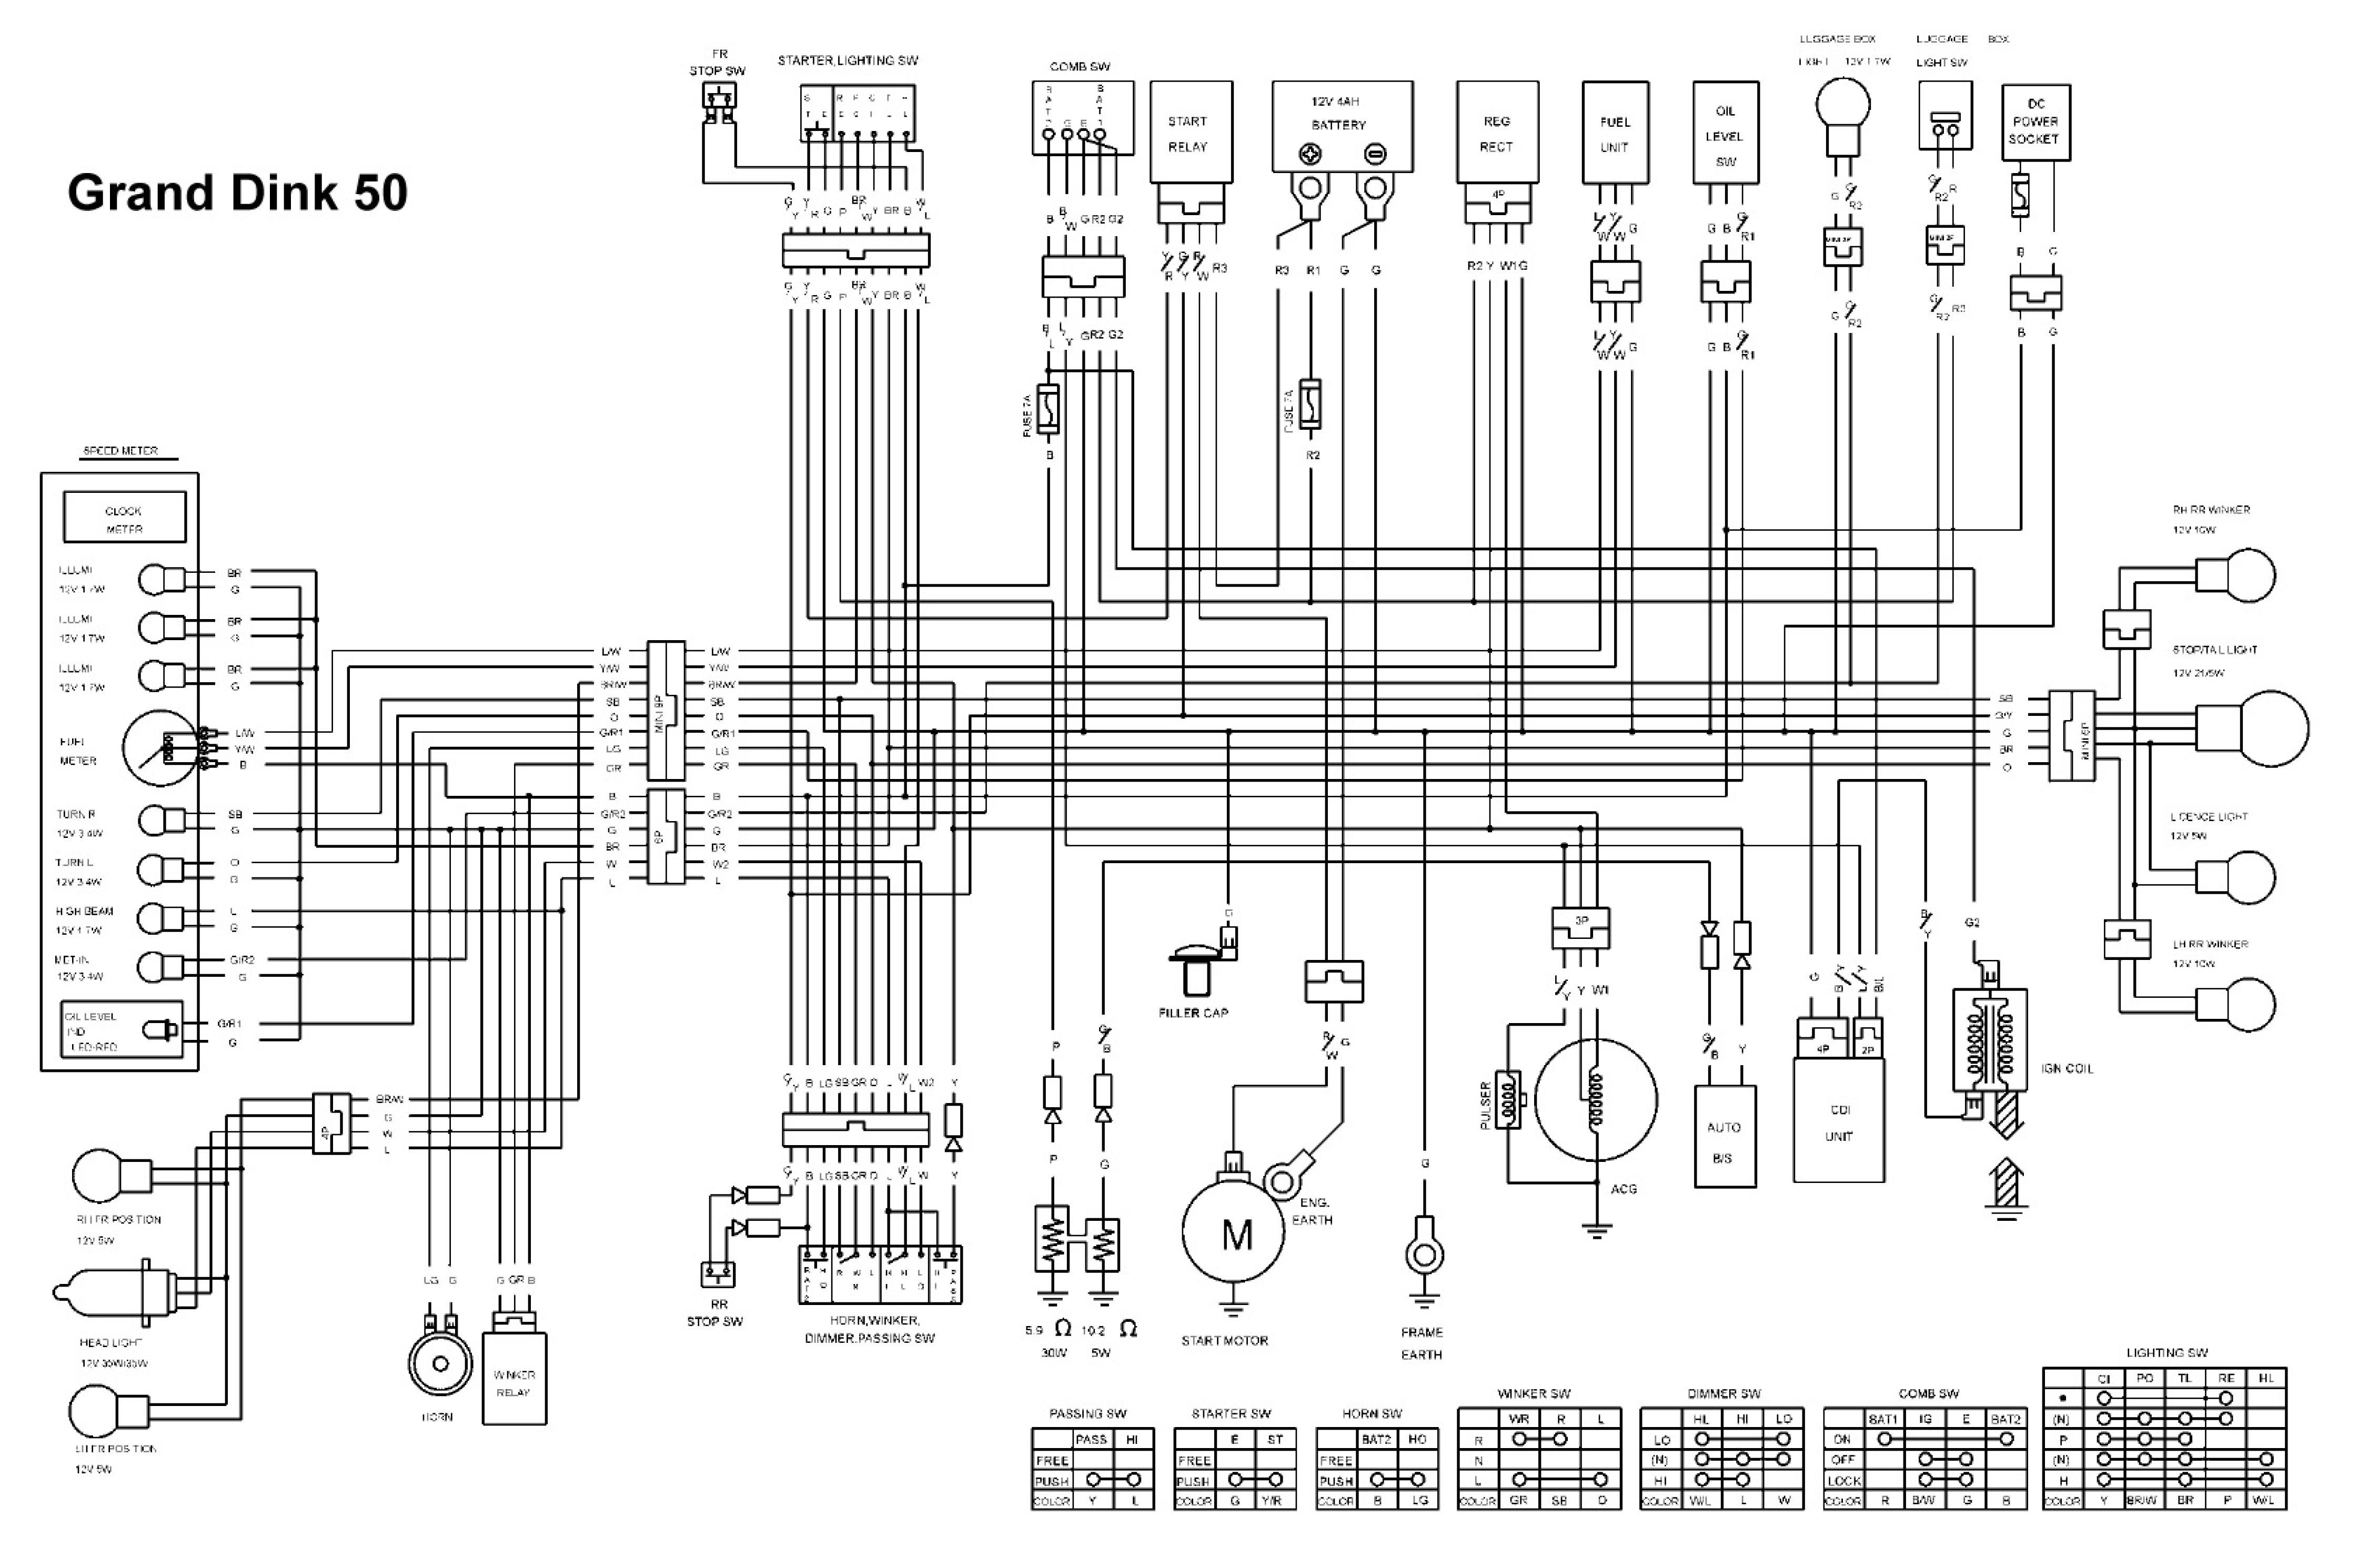 139qmb wiring diagram central heating honeywell jinlun scooter library